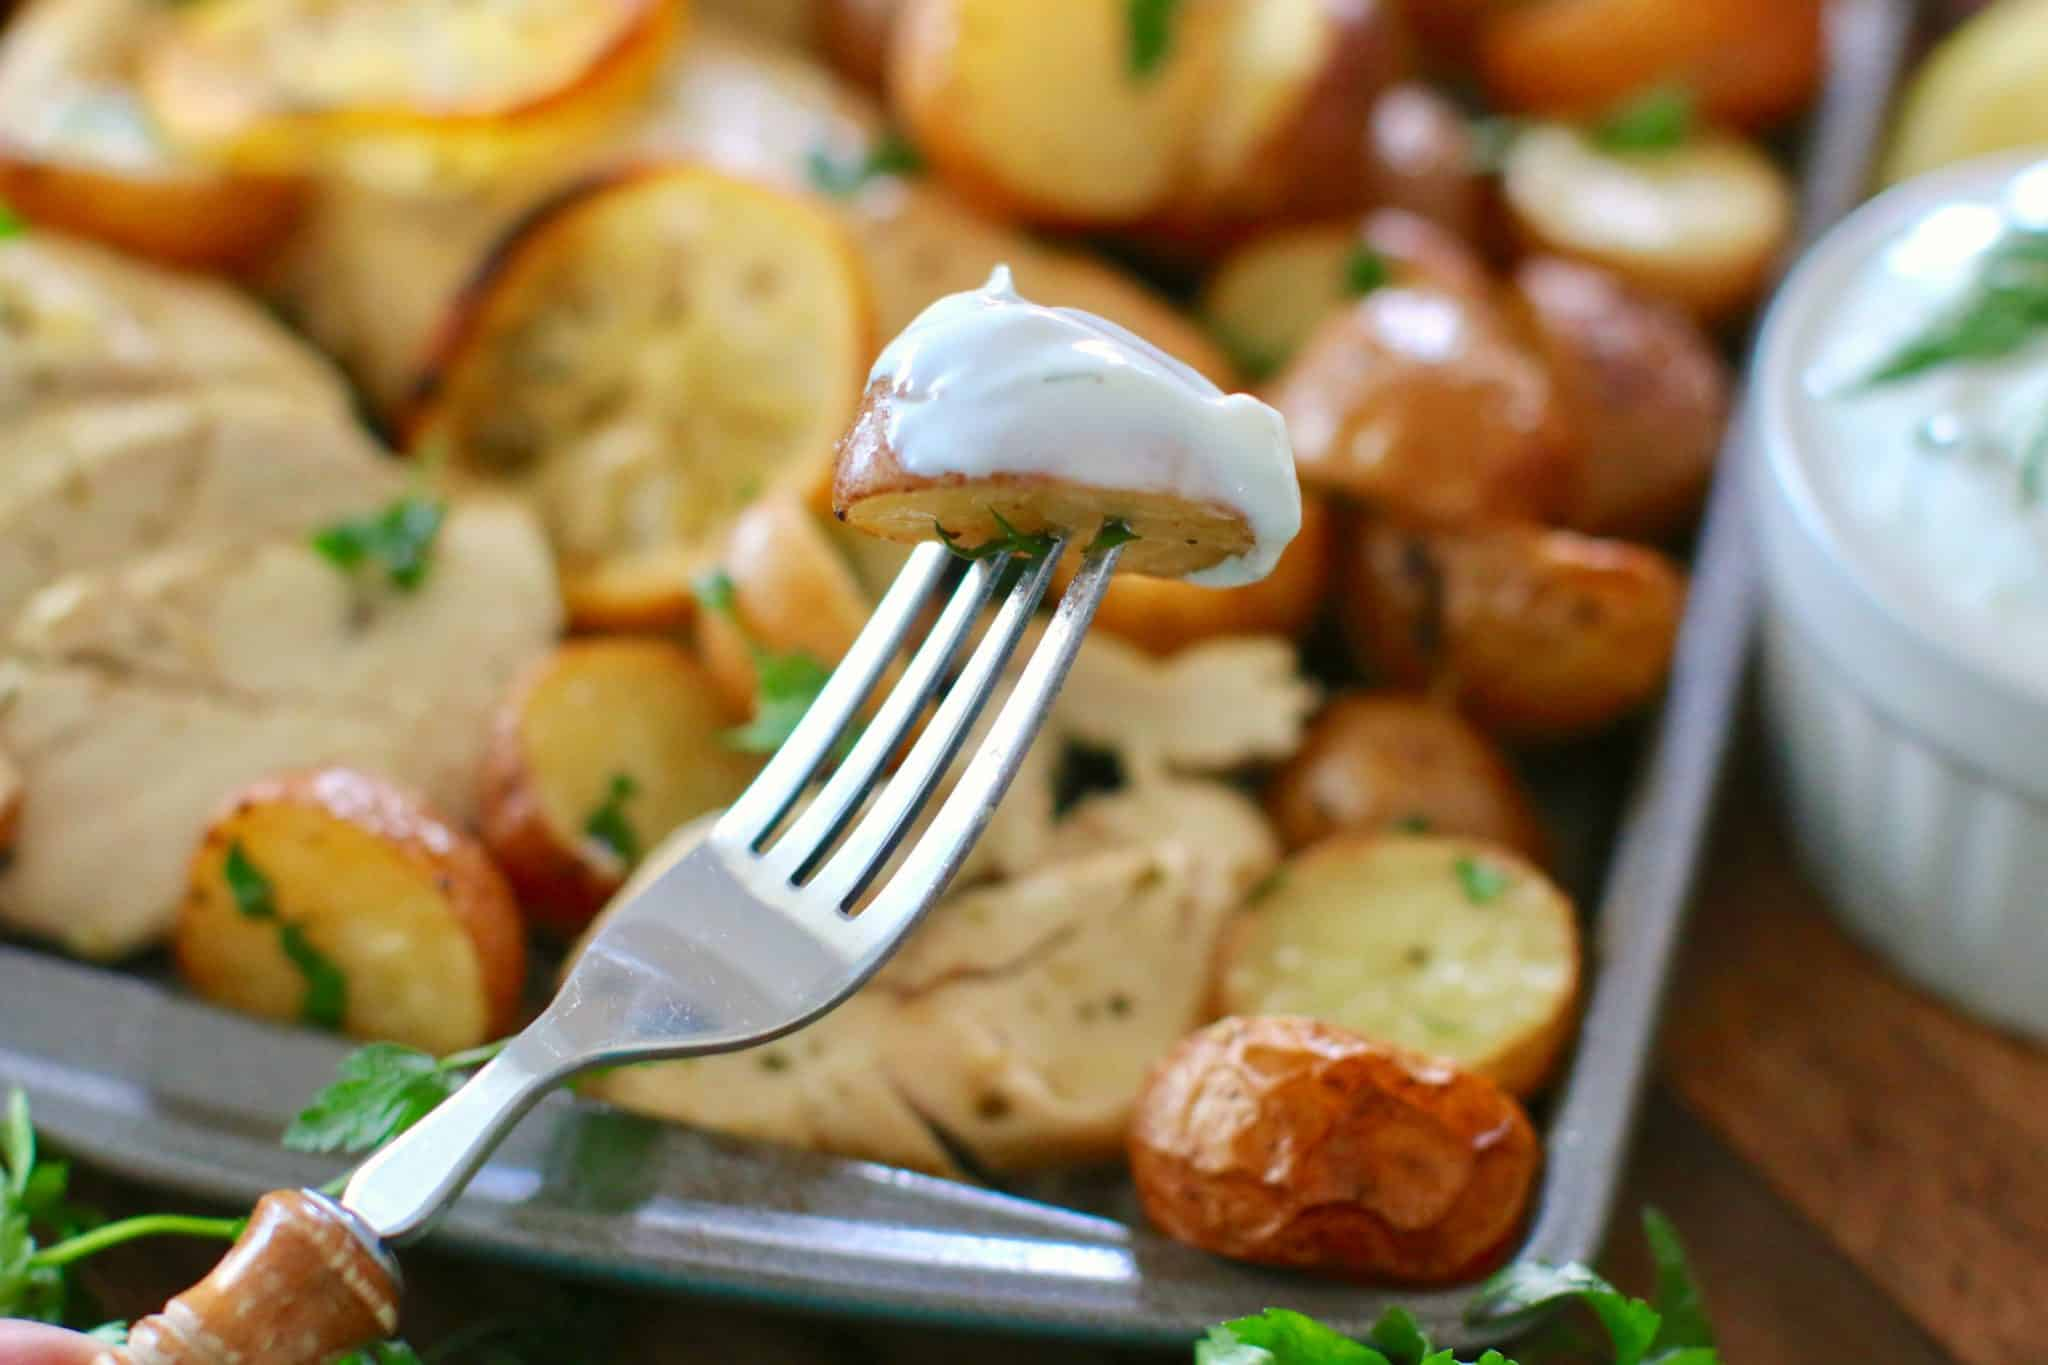 fork holding half of a baked potato that has been dipped in tzaziki sauce.